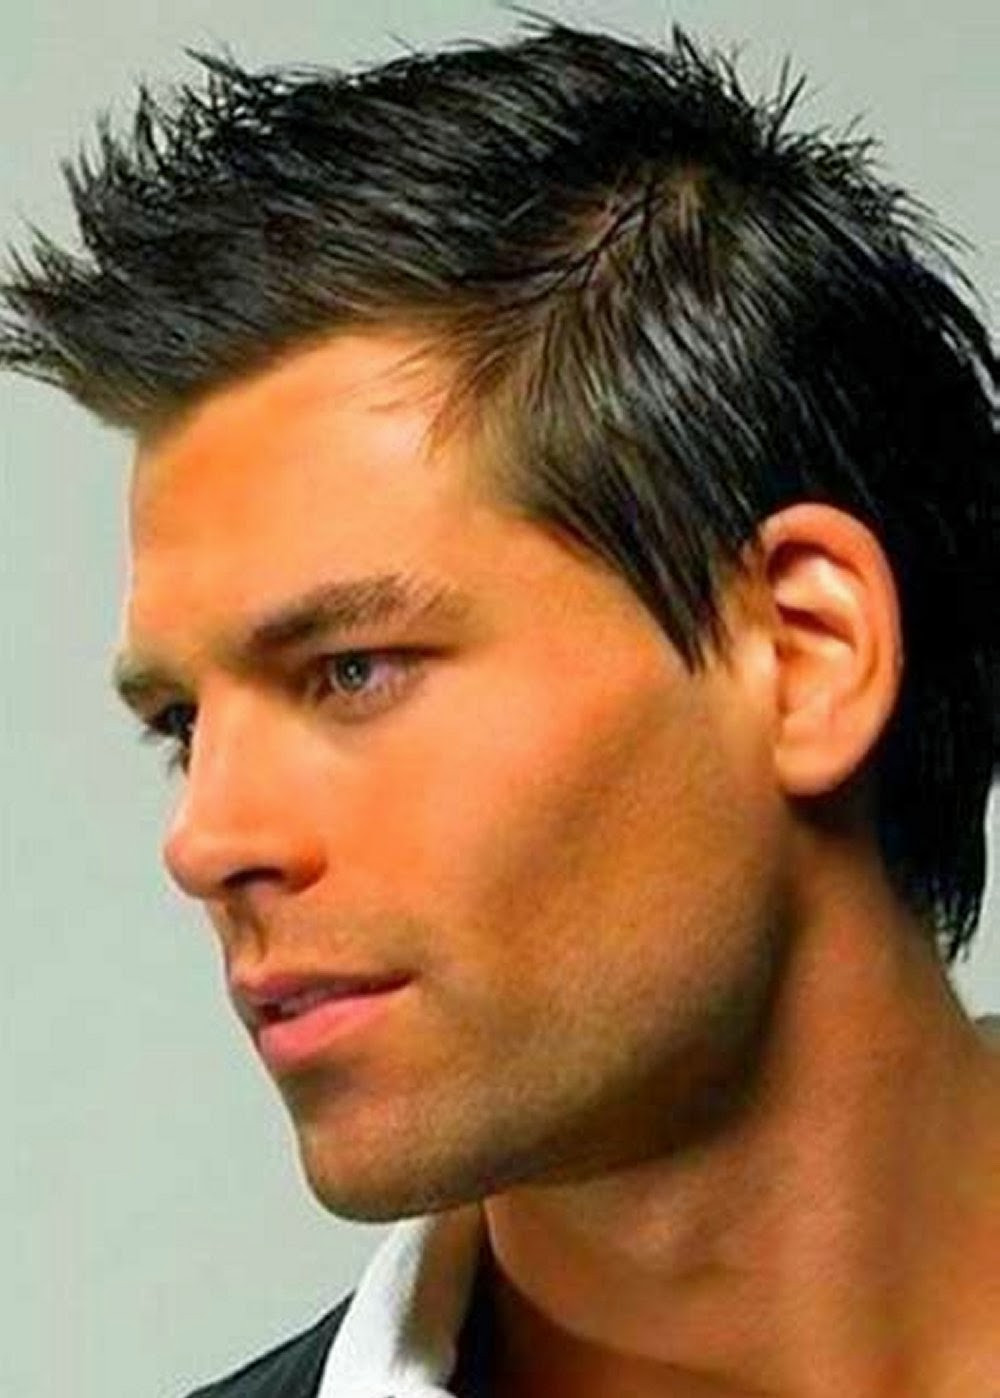 Best ideas about Mens Haircuts . Save or Pin Trends Short Romance Hairstyles for Men 2014 Now.